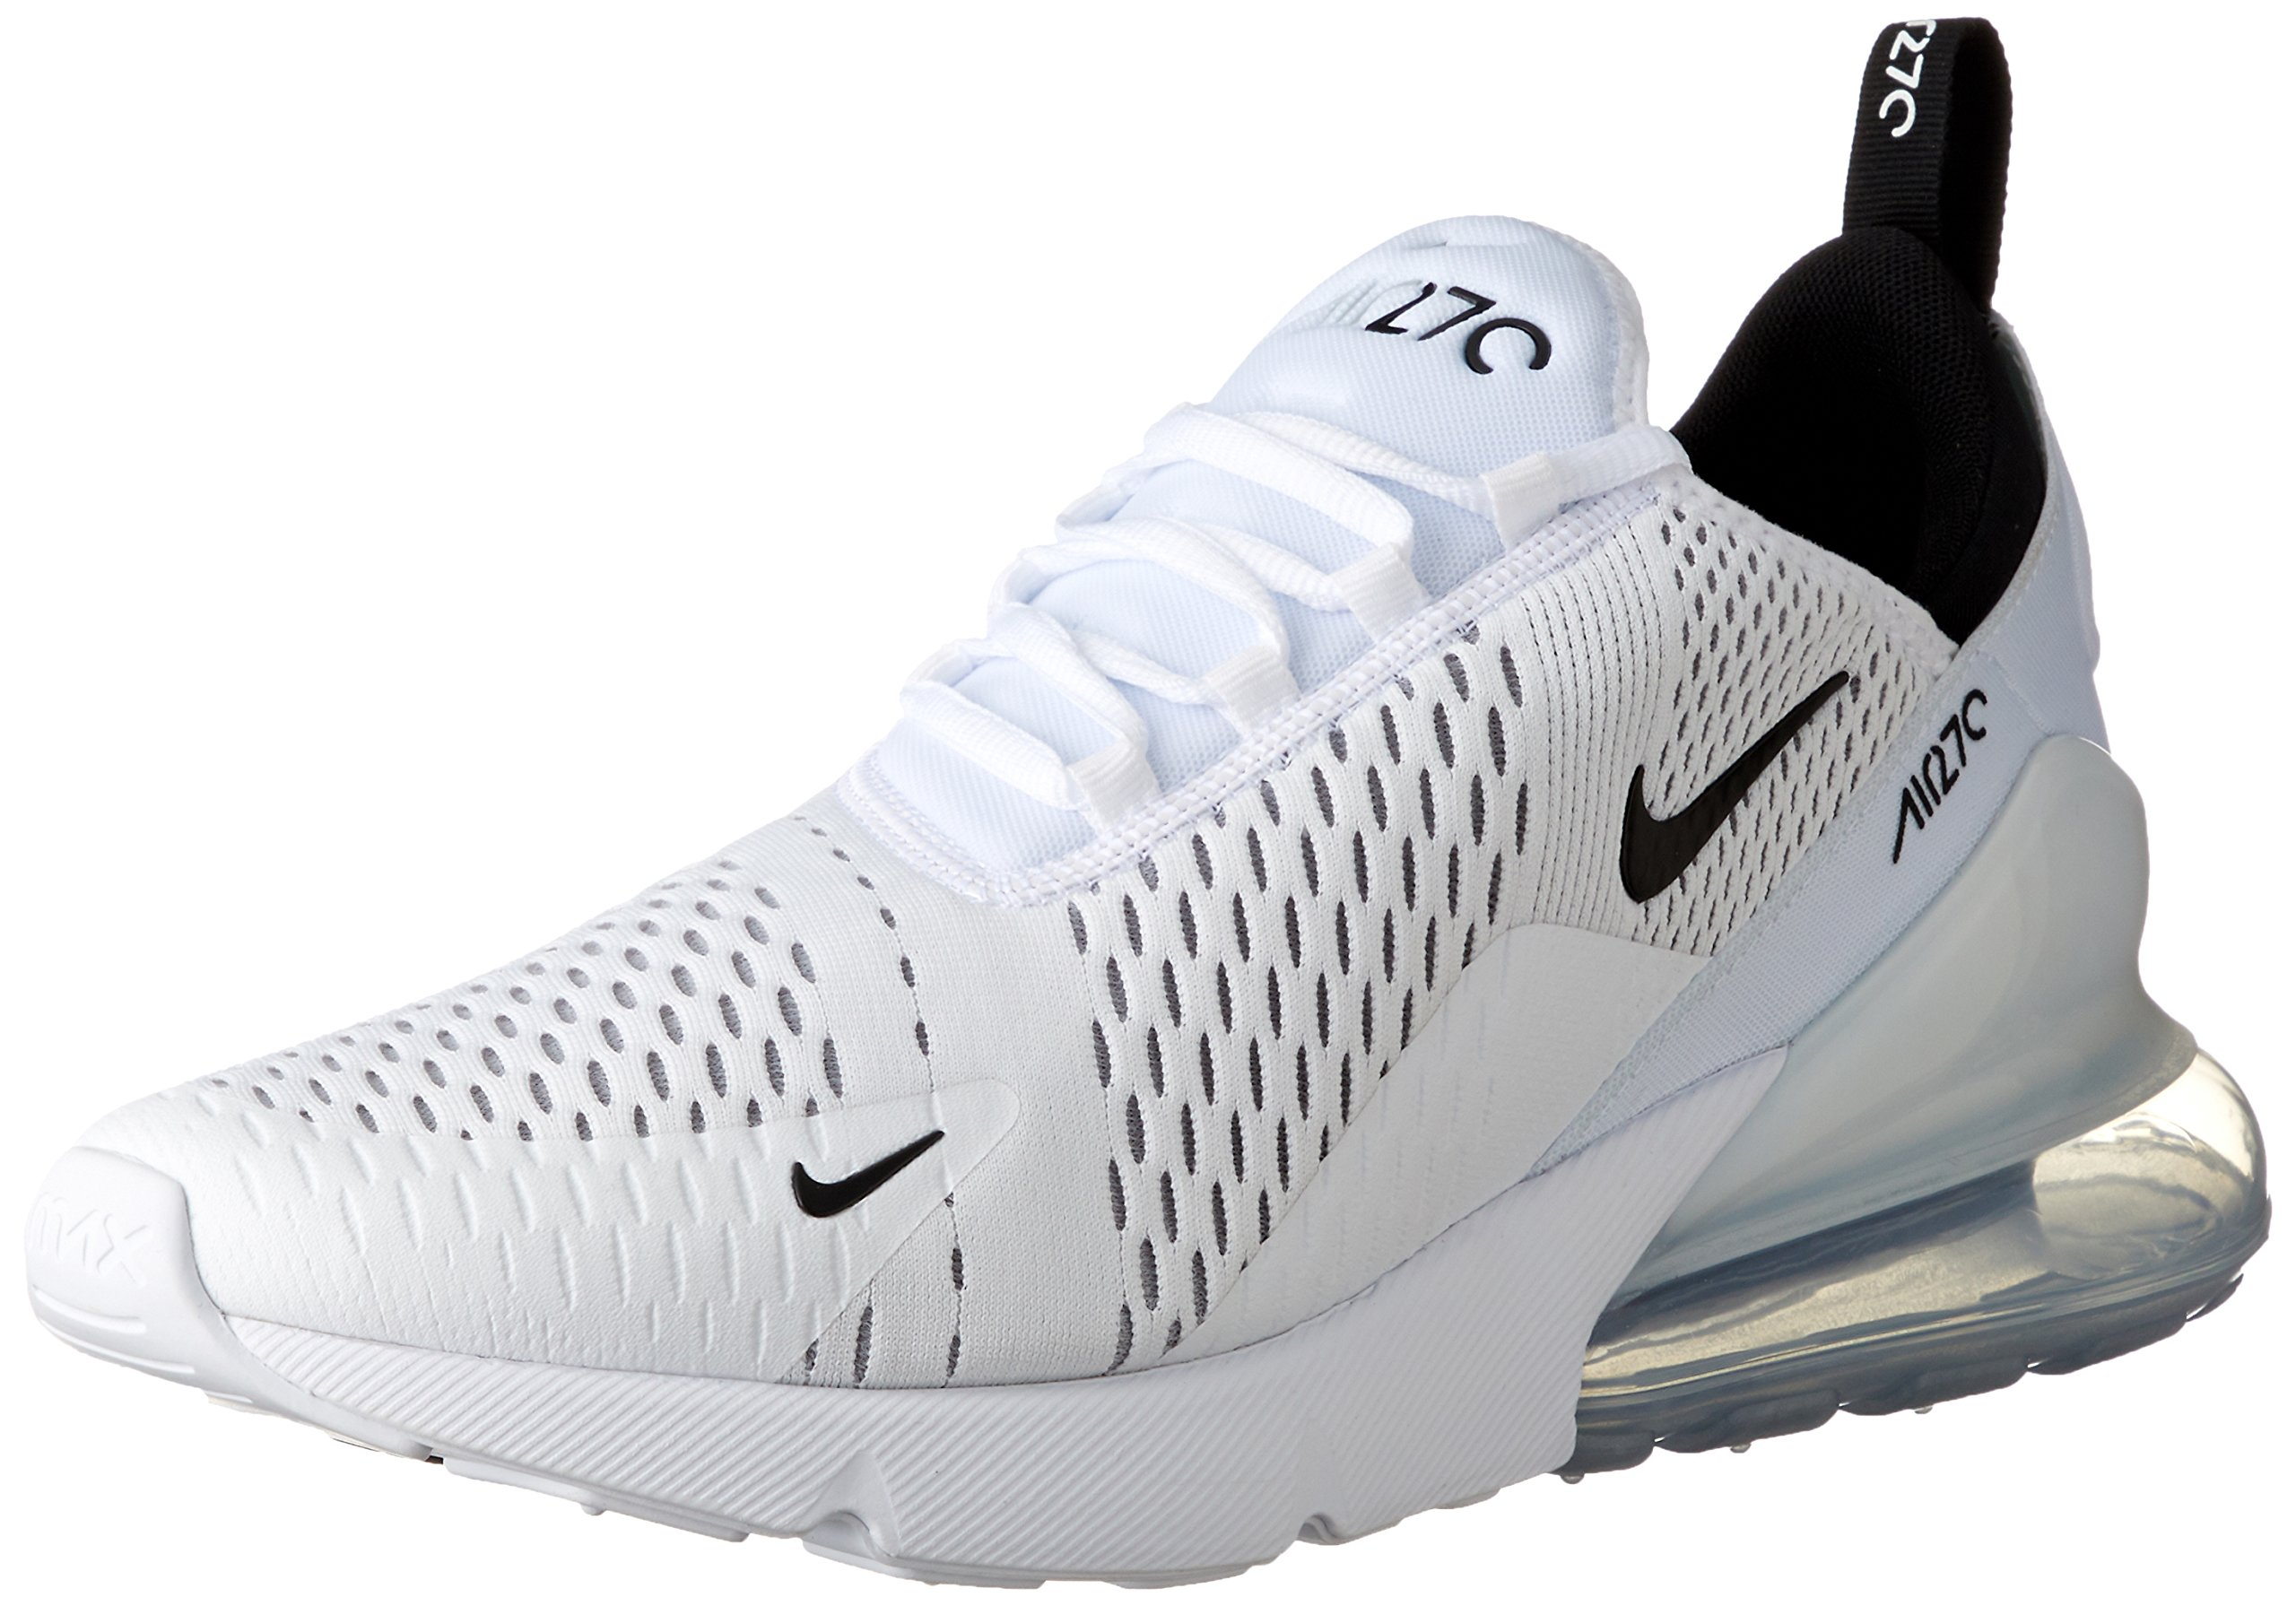 reputable site 94692 6a99a Nike Air Max 270 Men's Running Shoes White/Black-White AH8050-100 (10.5  D(M) US)